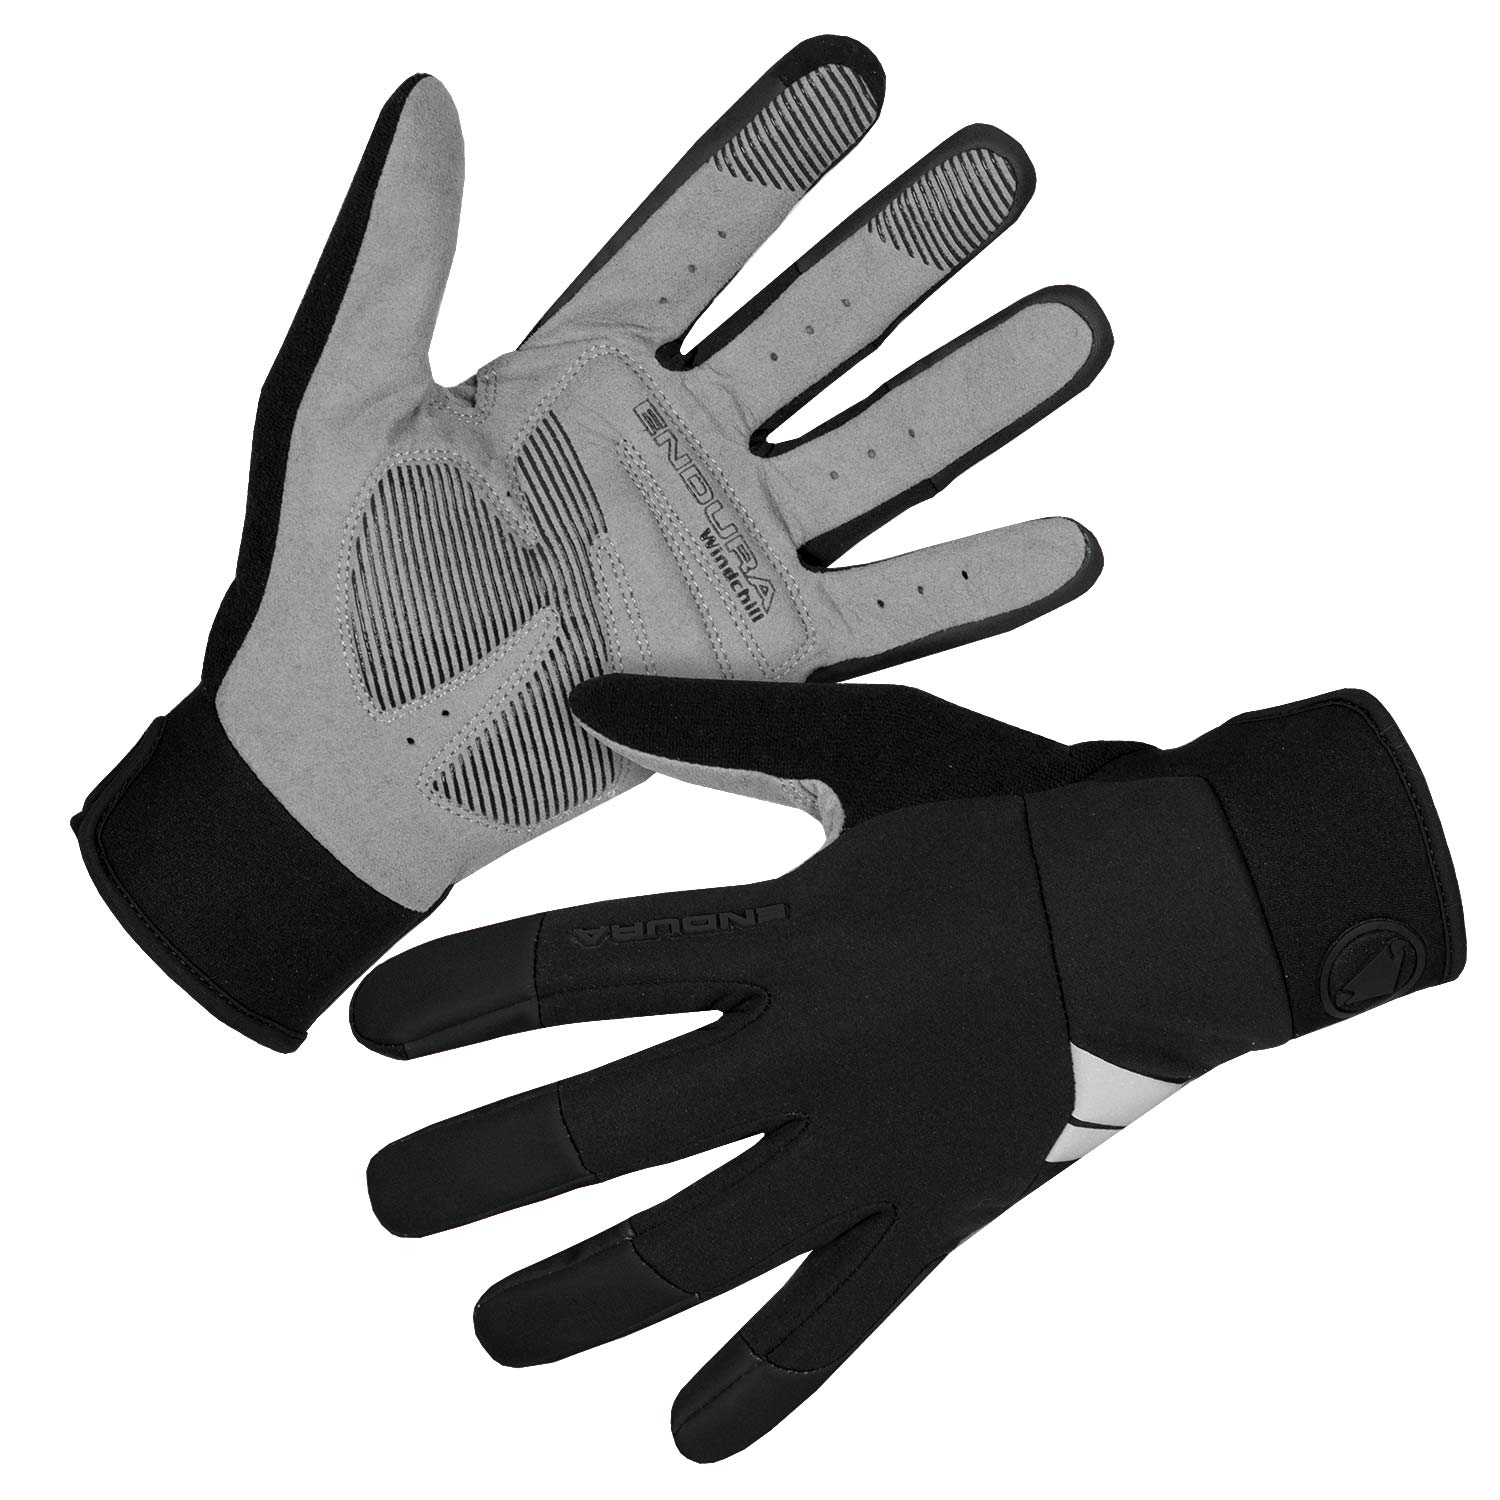 Endura Windchill (Large) Windproof Cycling Gloves